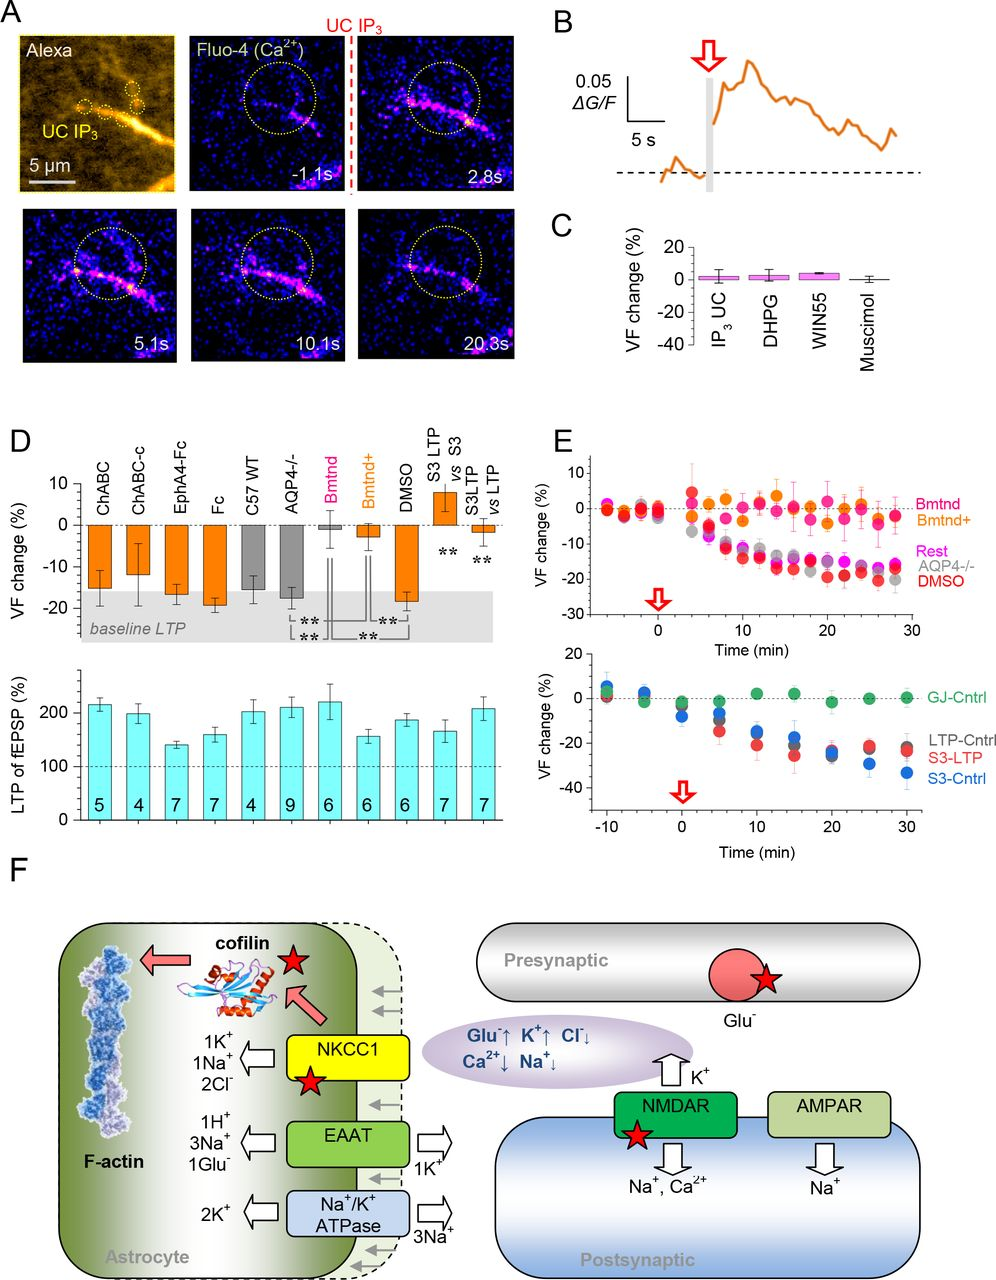 Ltp Induction Drives Remodeling Of Astroglia To Boost Glutamate